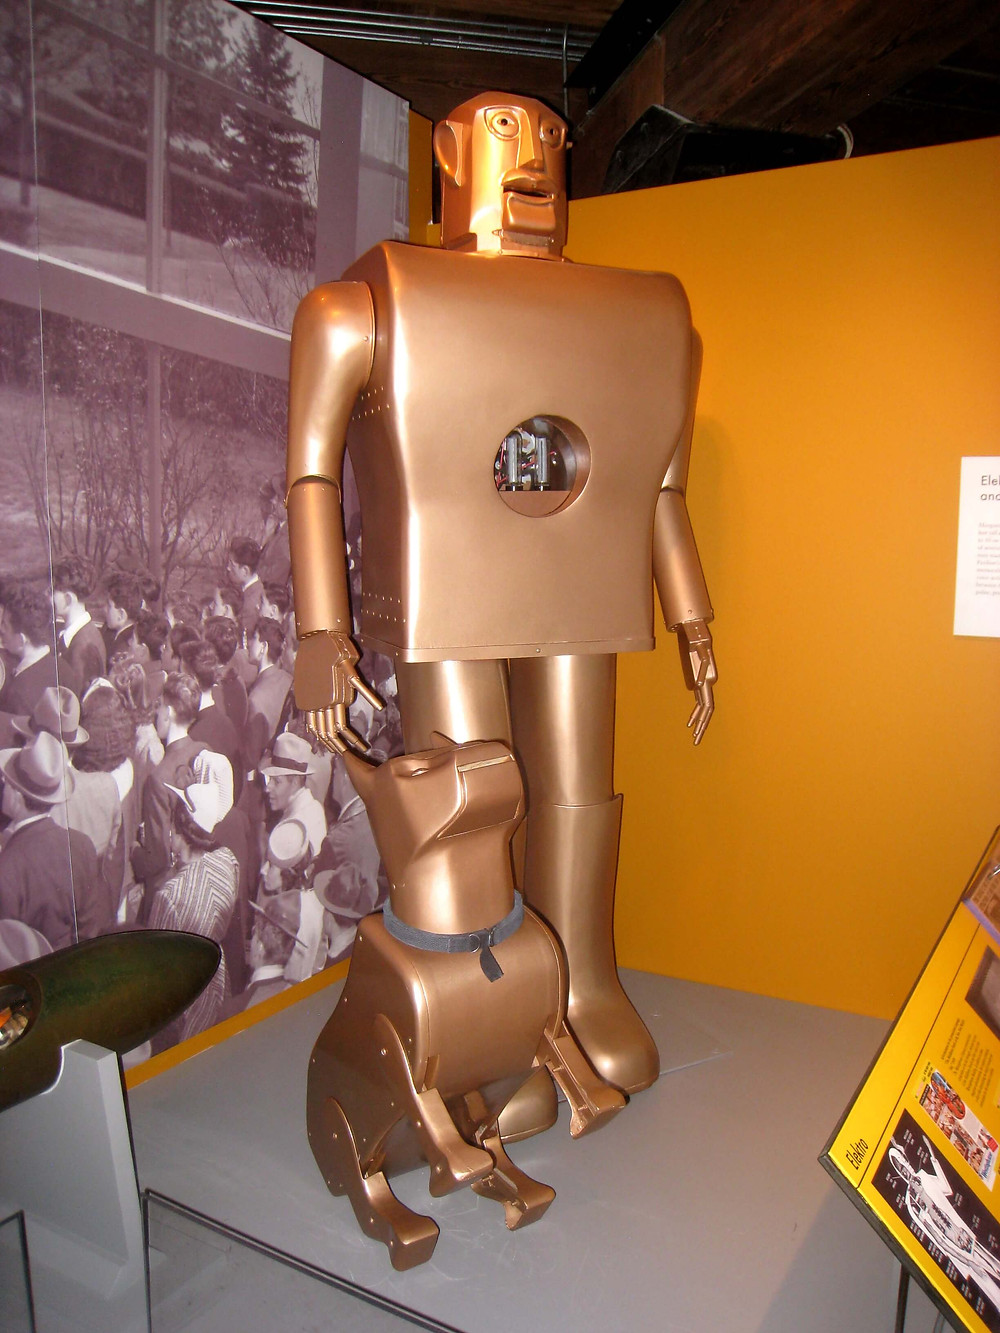 This image of the second humanoid robot